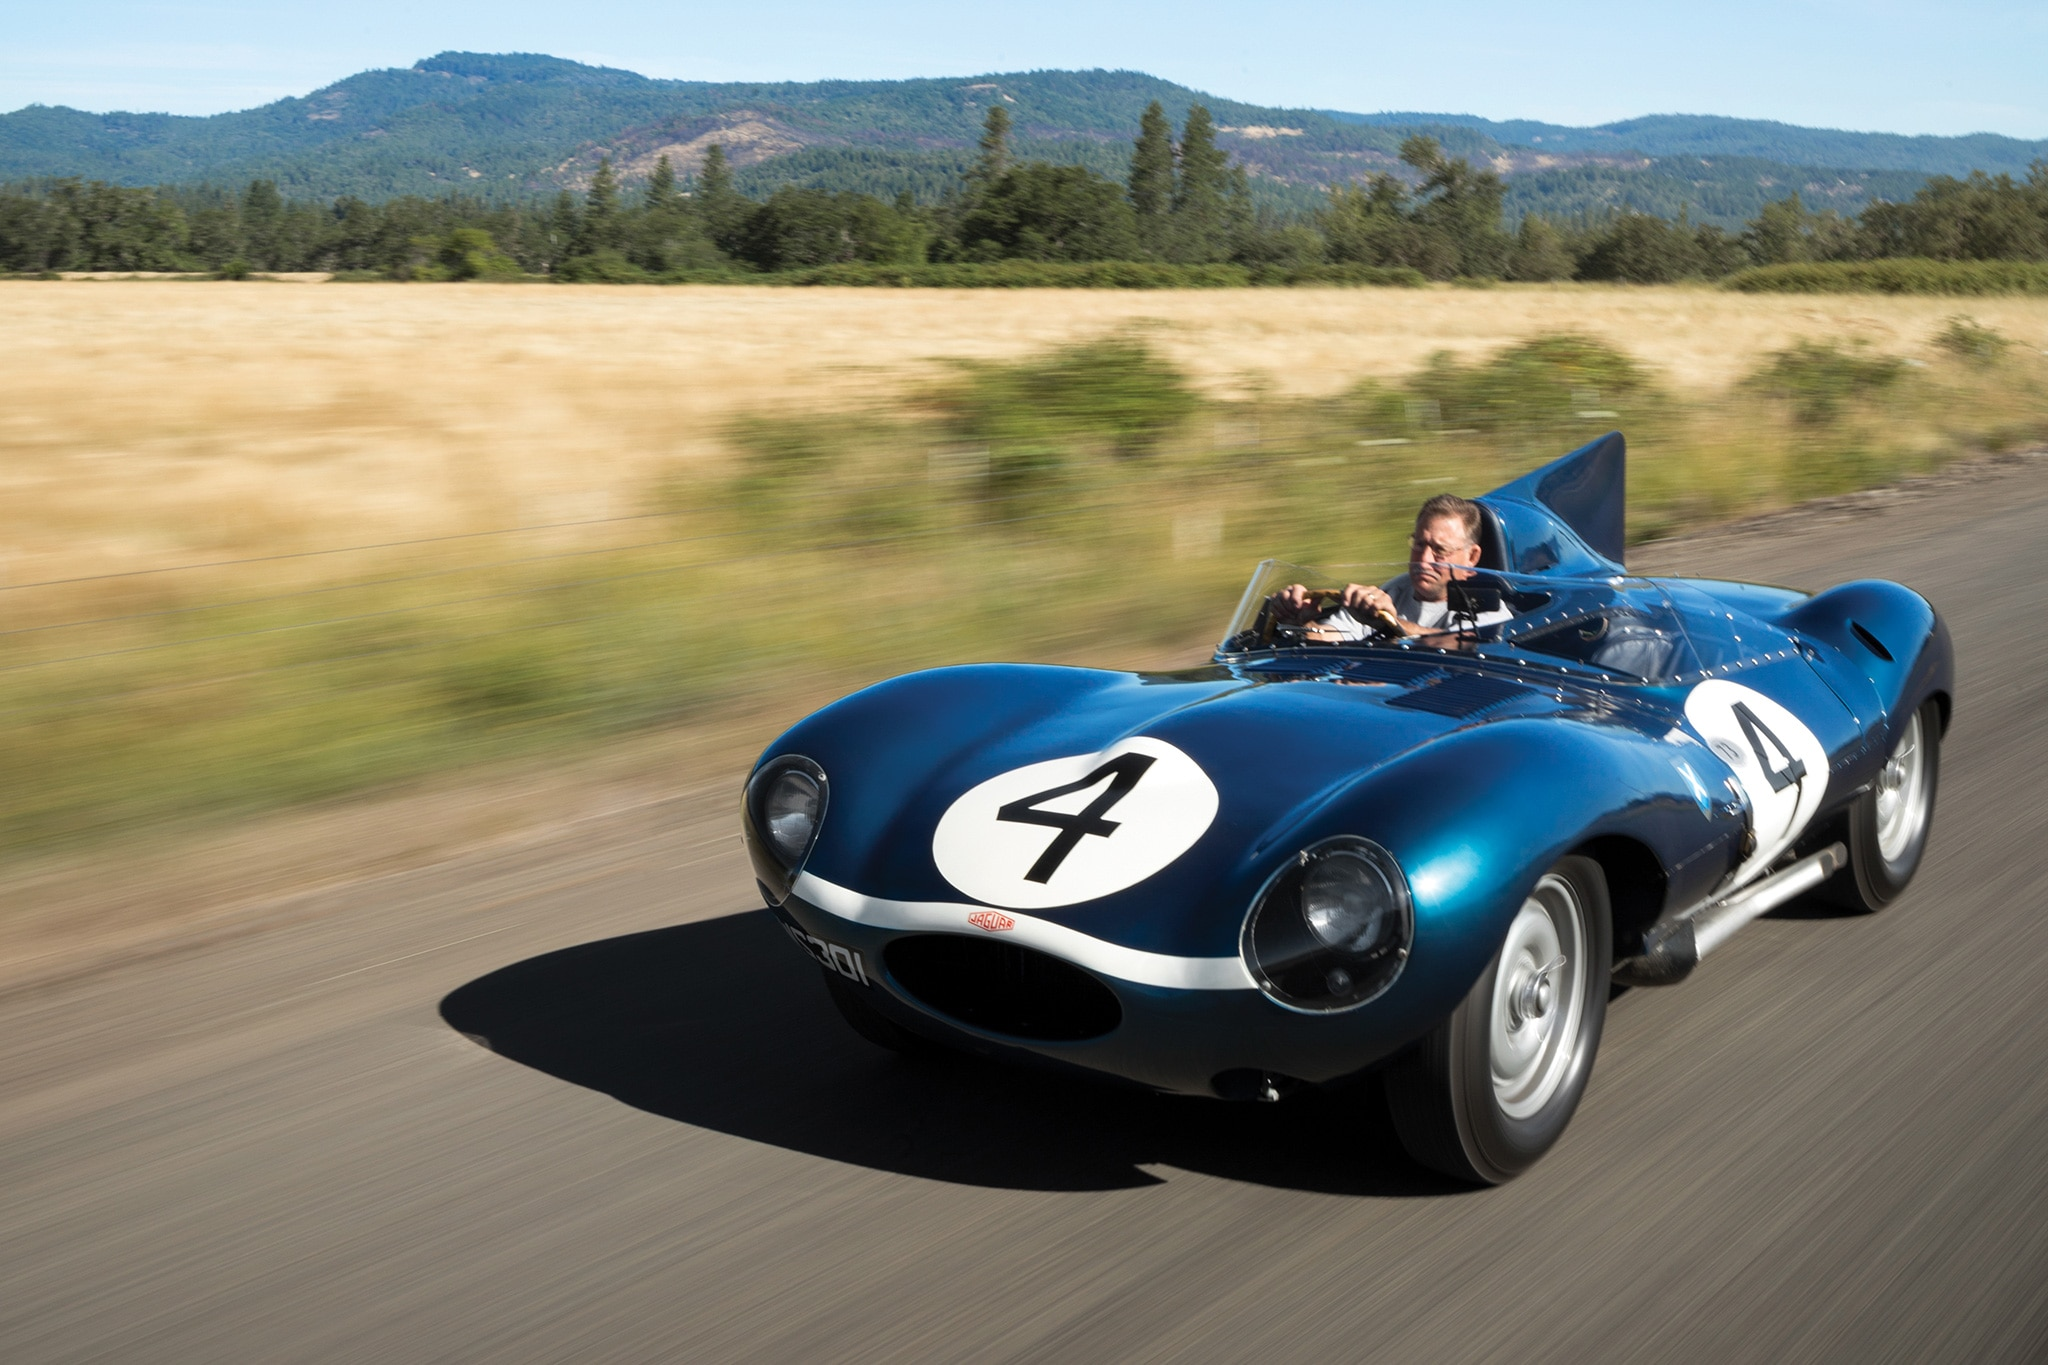 1955 jaguar d type bonafide le mans champion crosses the auction block automobile magazine. Black Bedroom Furniture Sets. Home Design Ideas